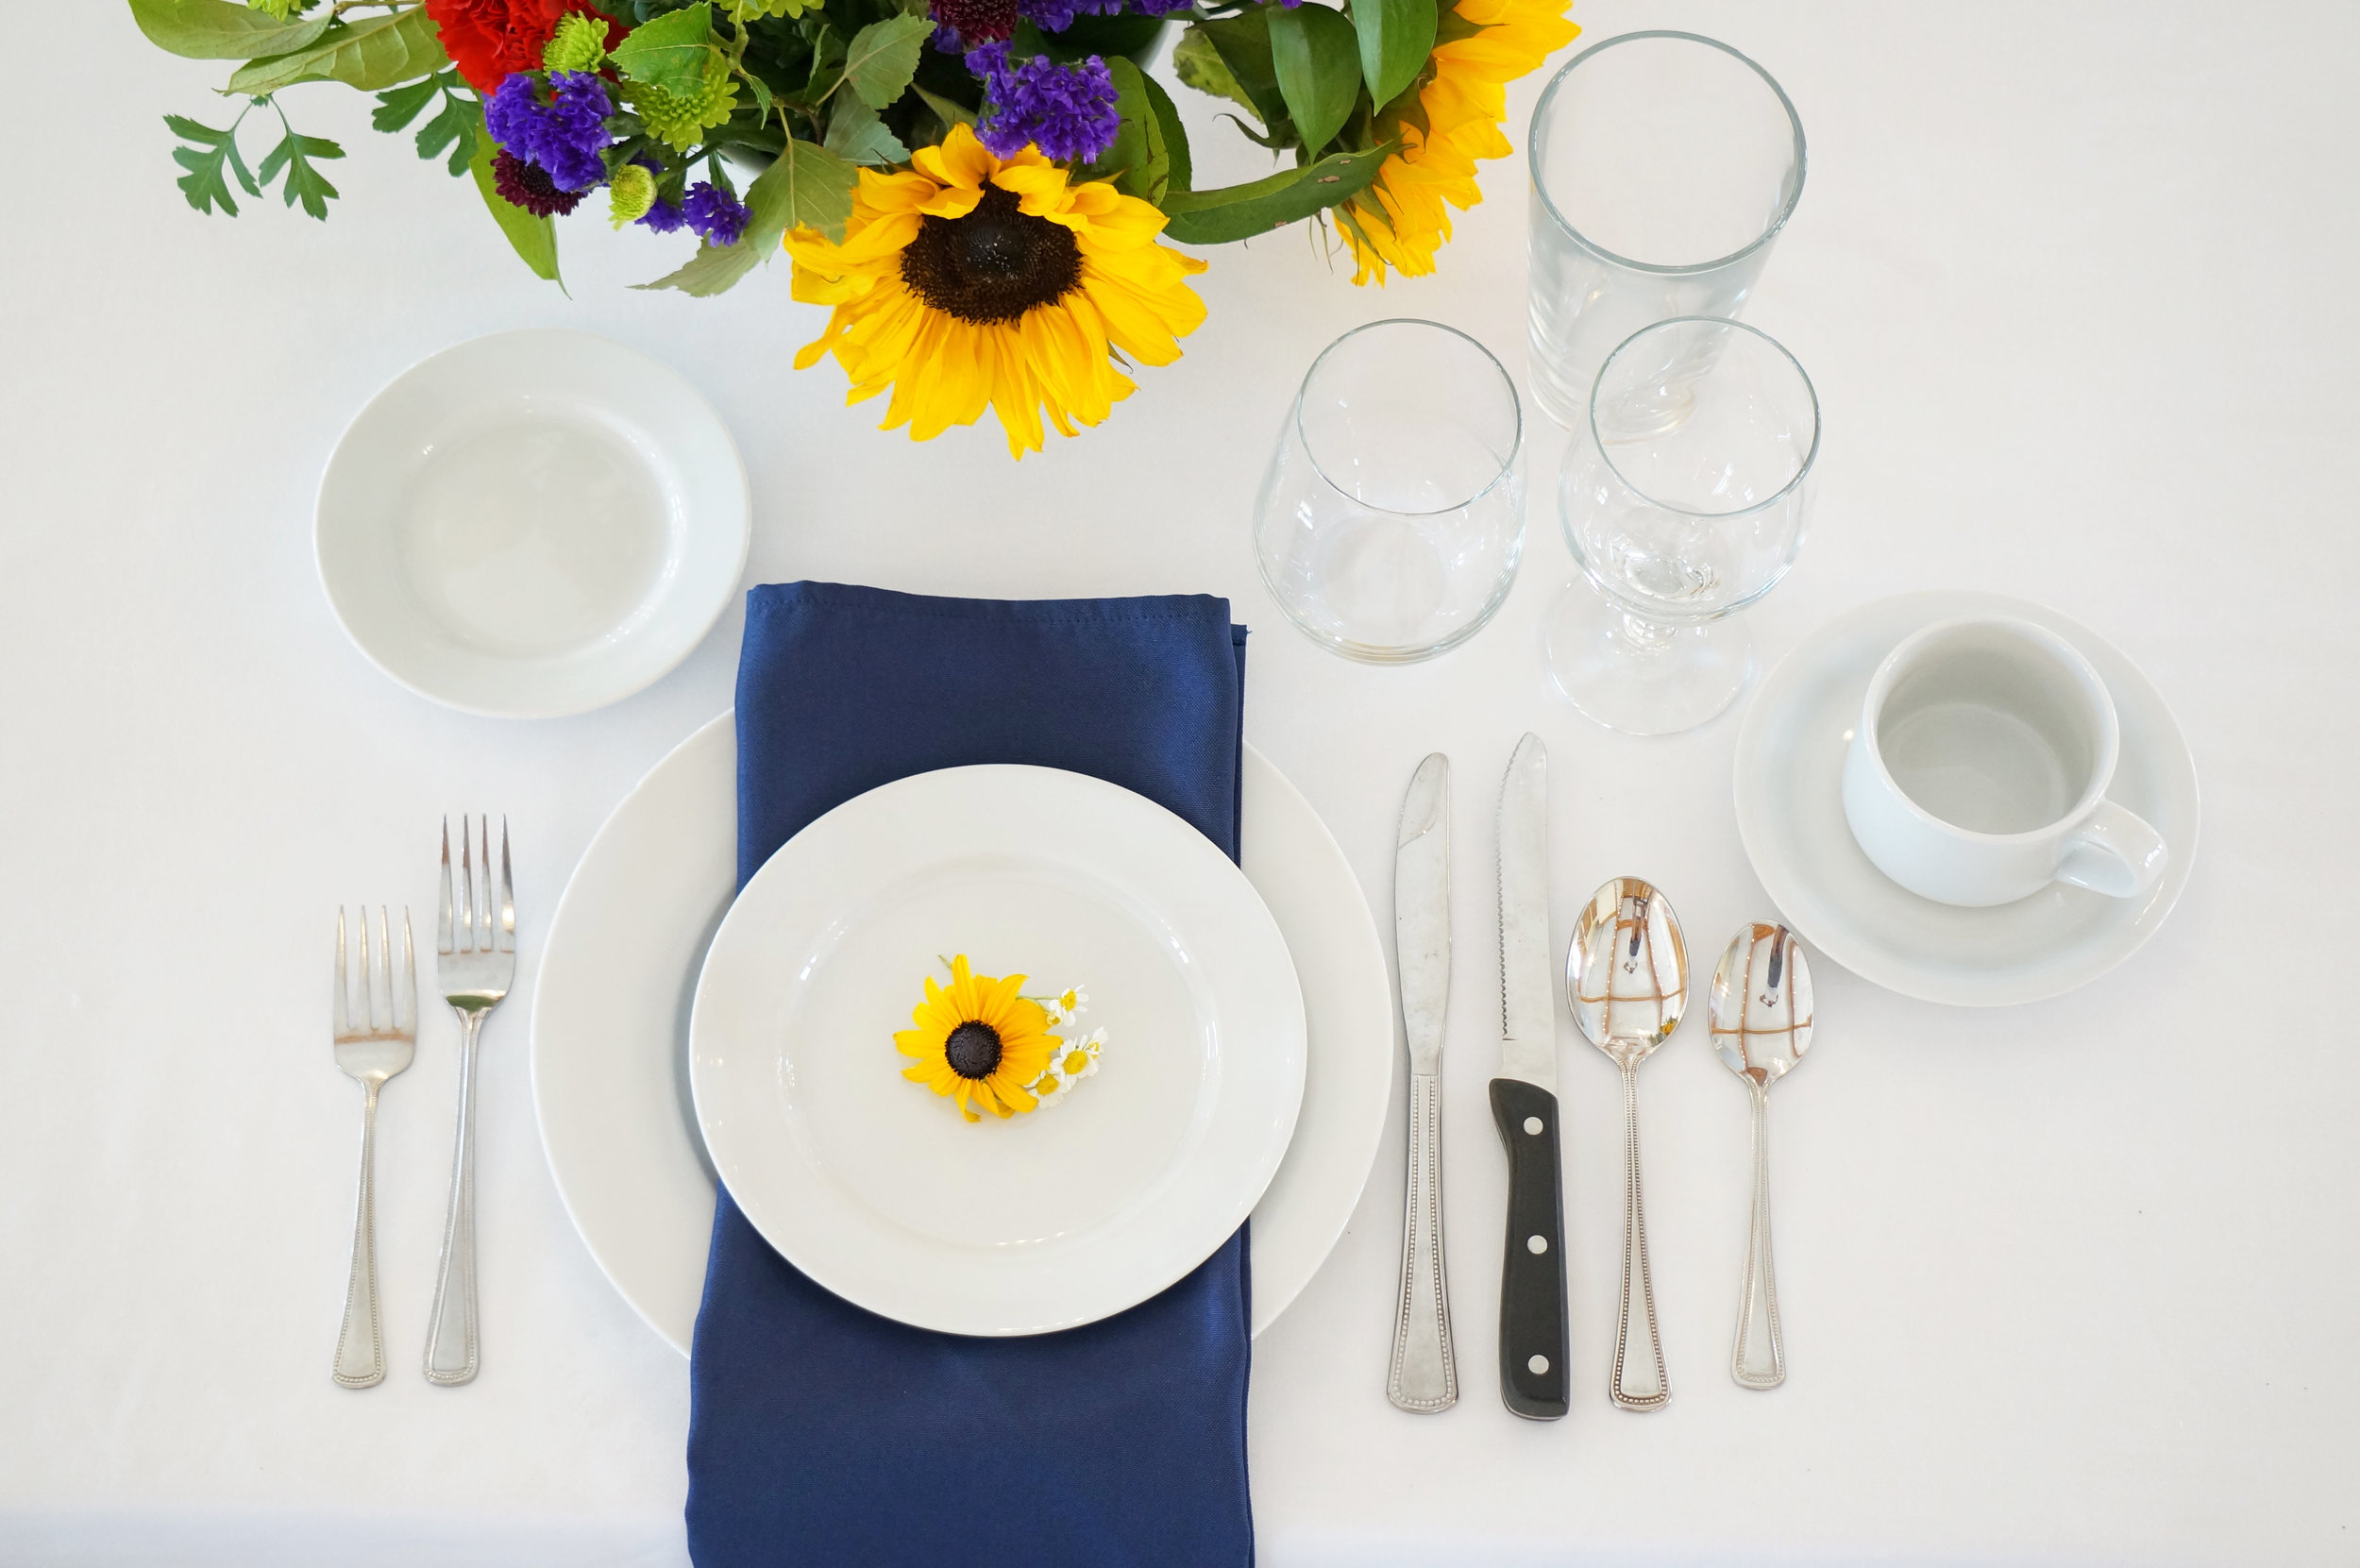 Classic White China Place Settings